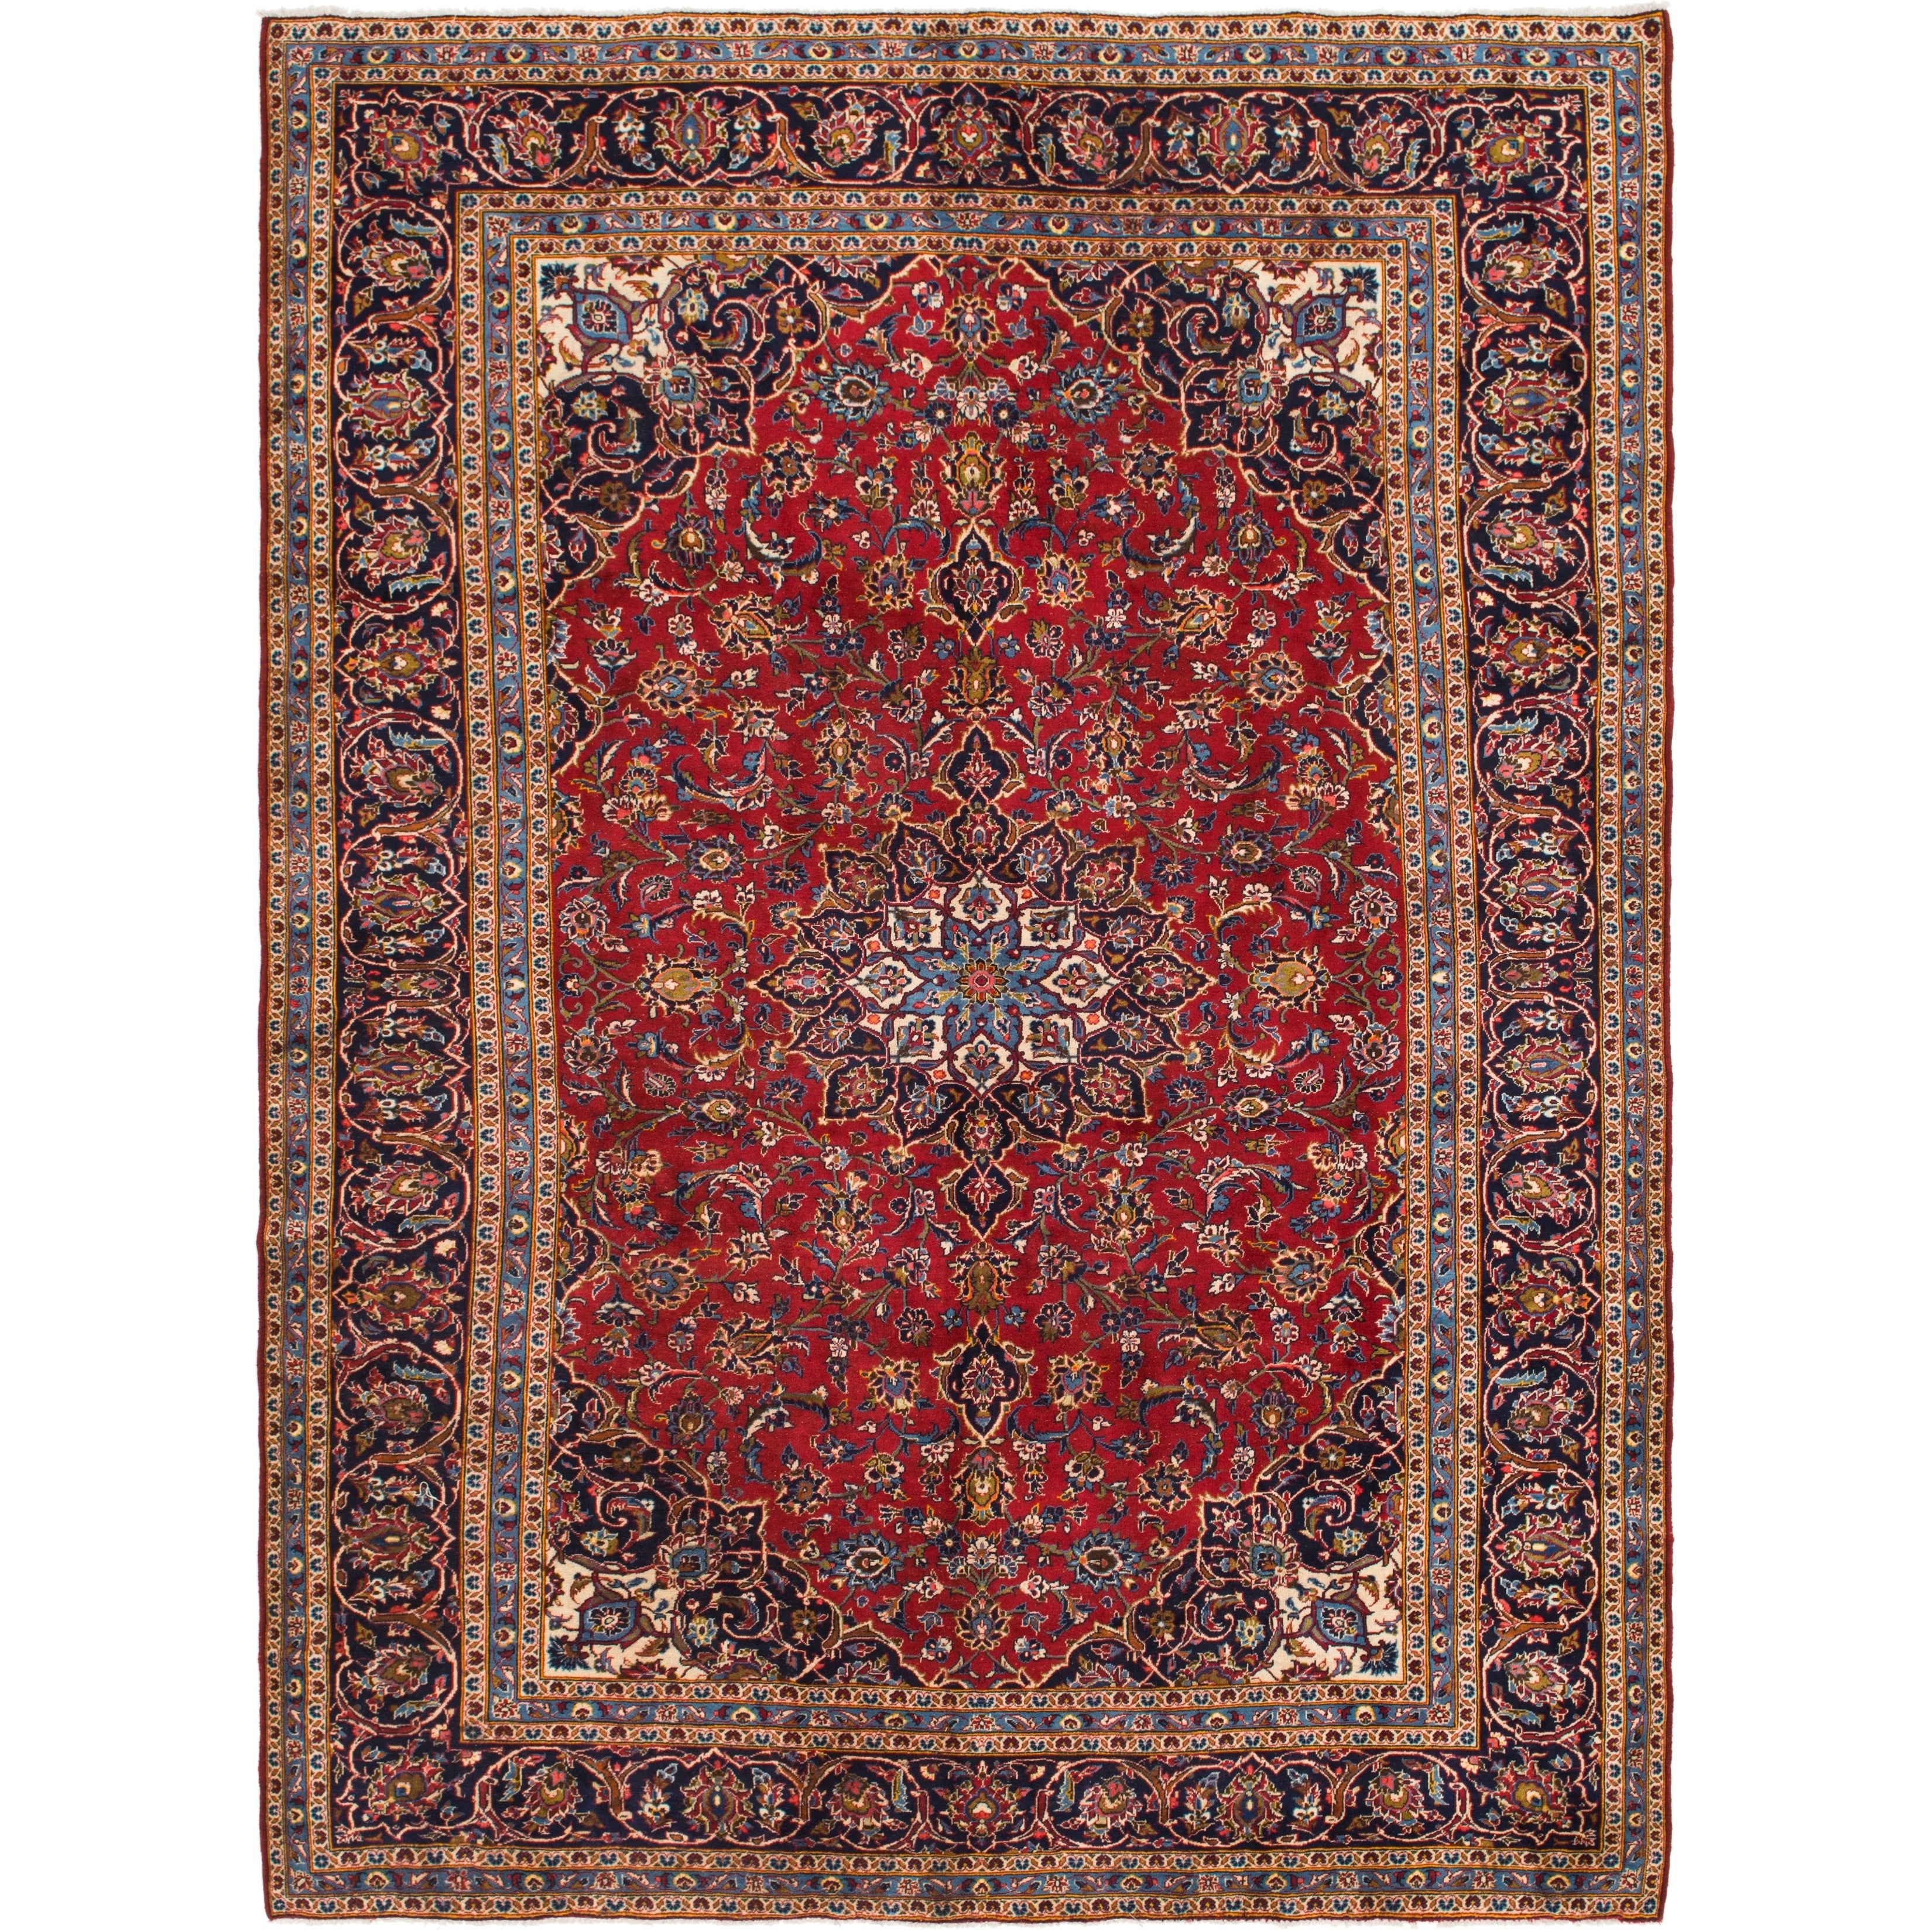 Hand Knotted Kashan Wool Area Rug - 9 6 x 12 9 (Red - 9 6 x 12 9)